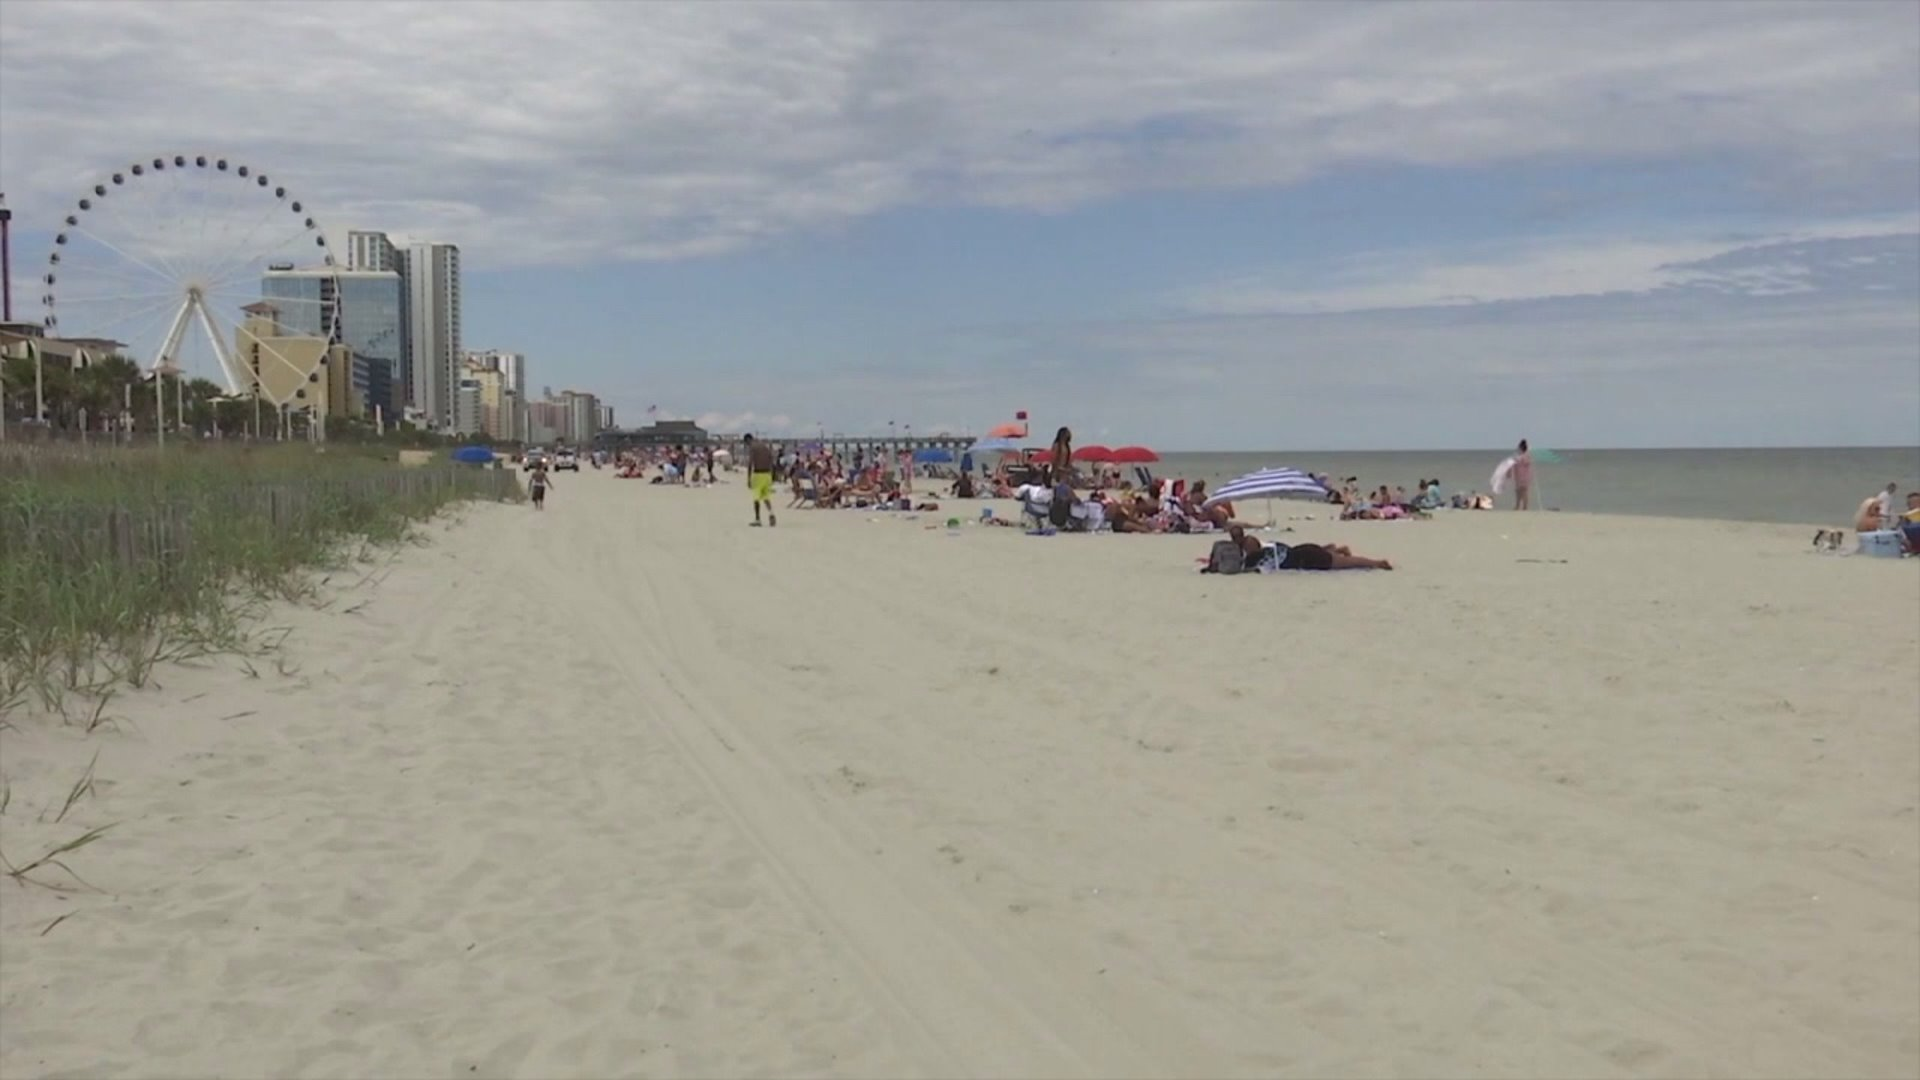 Local families re-evaluating vacation trips to Myrtle Beach